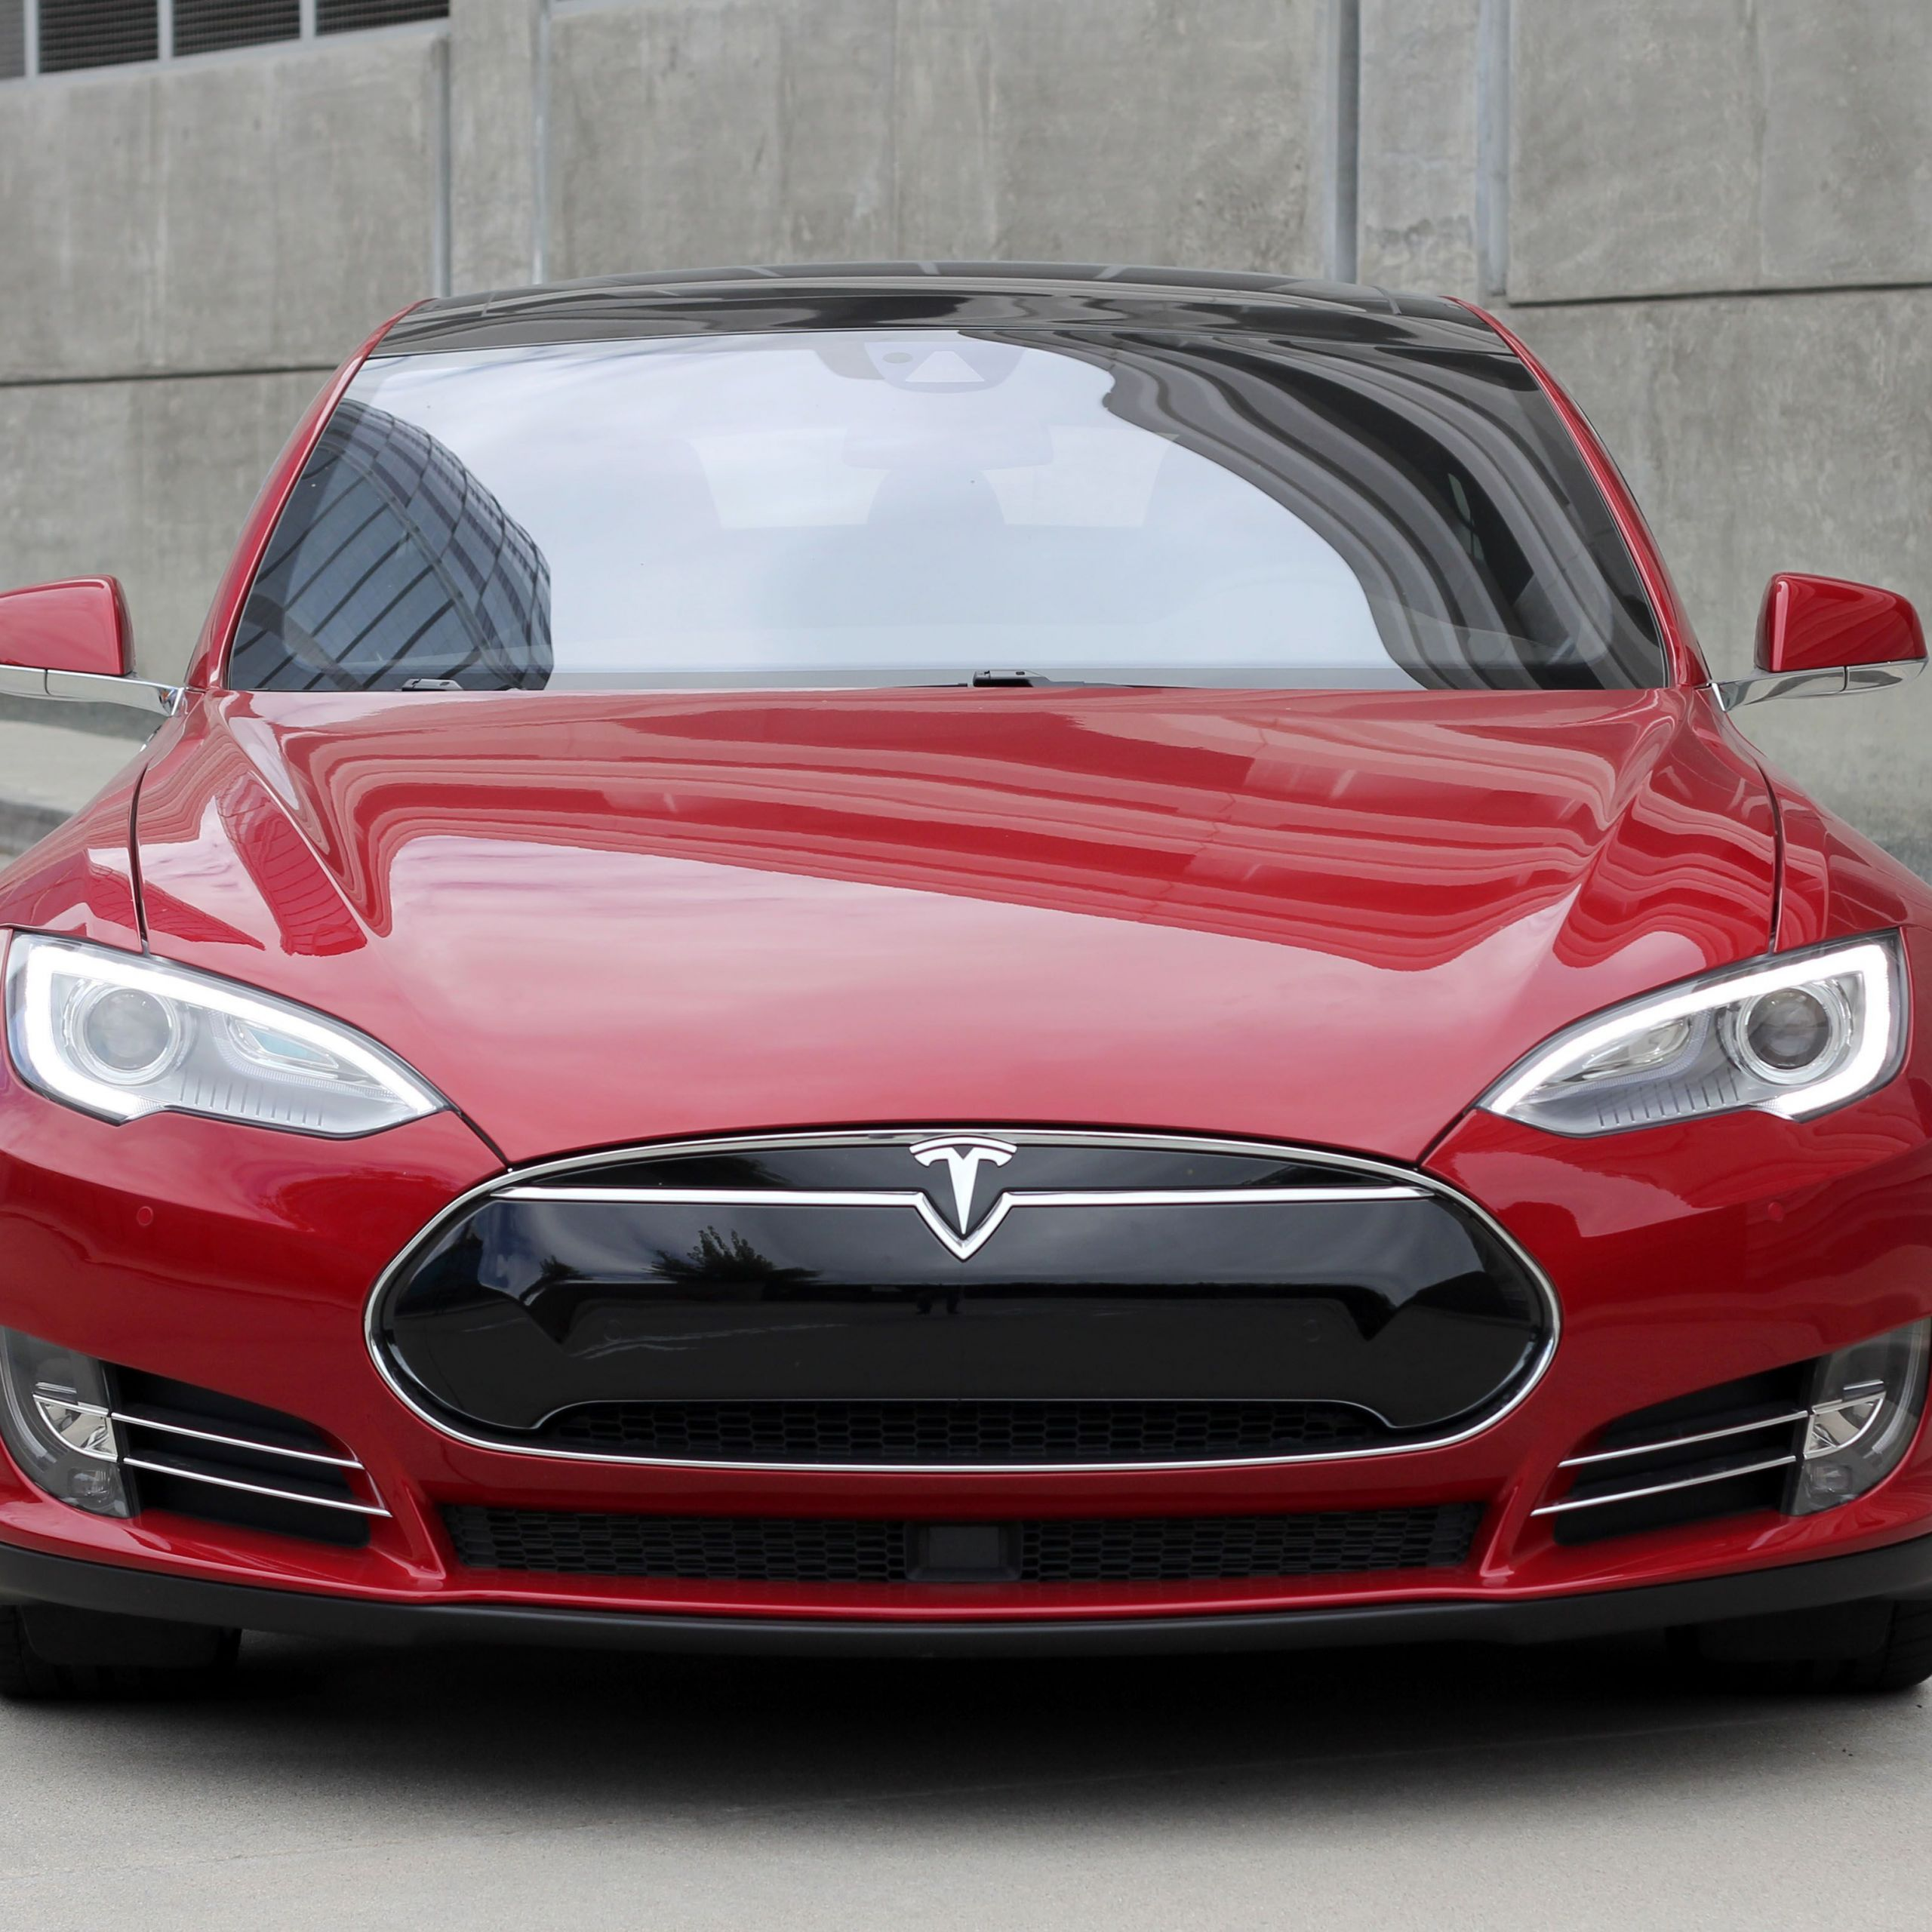 Tesla who Makes the Car Unique Introducing the All New Tesla Model S P90d with Ludicrous